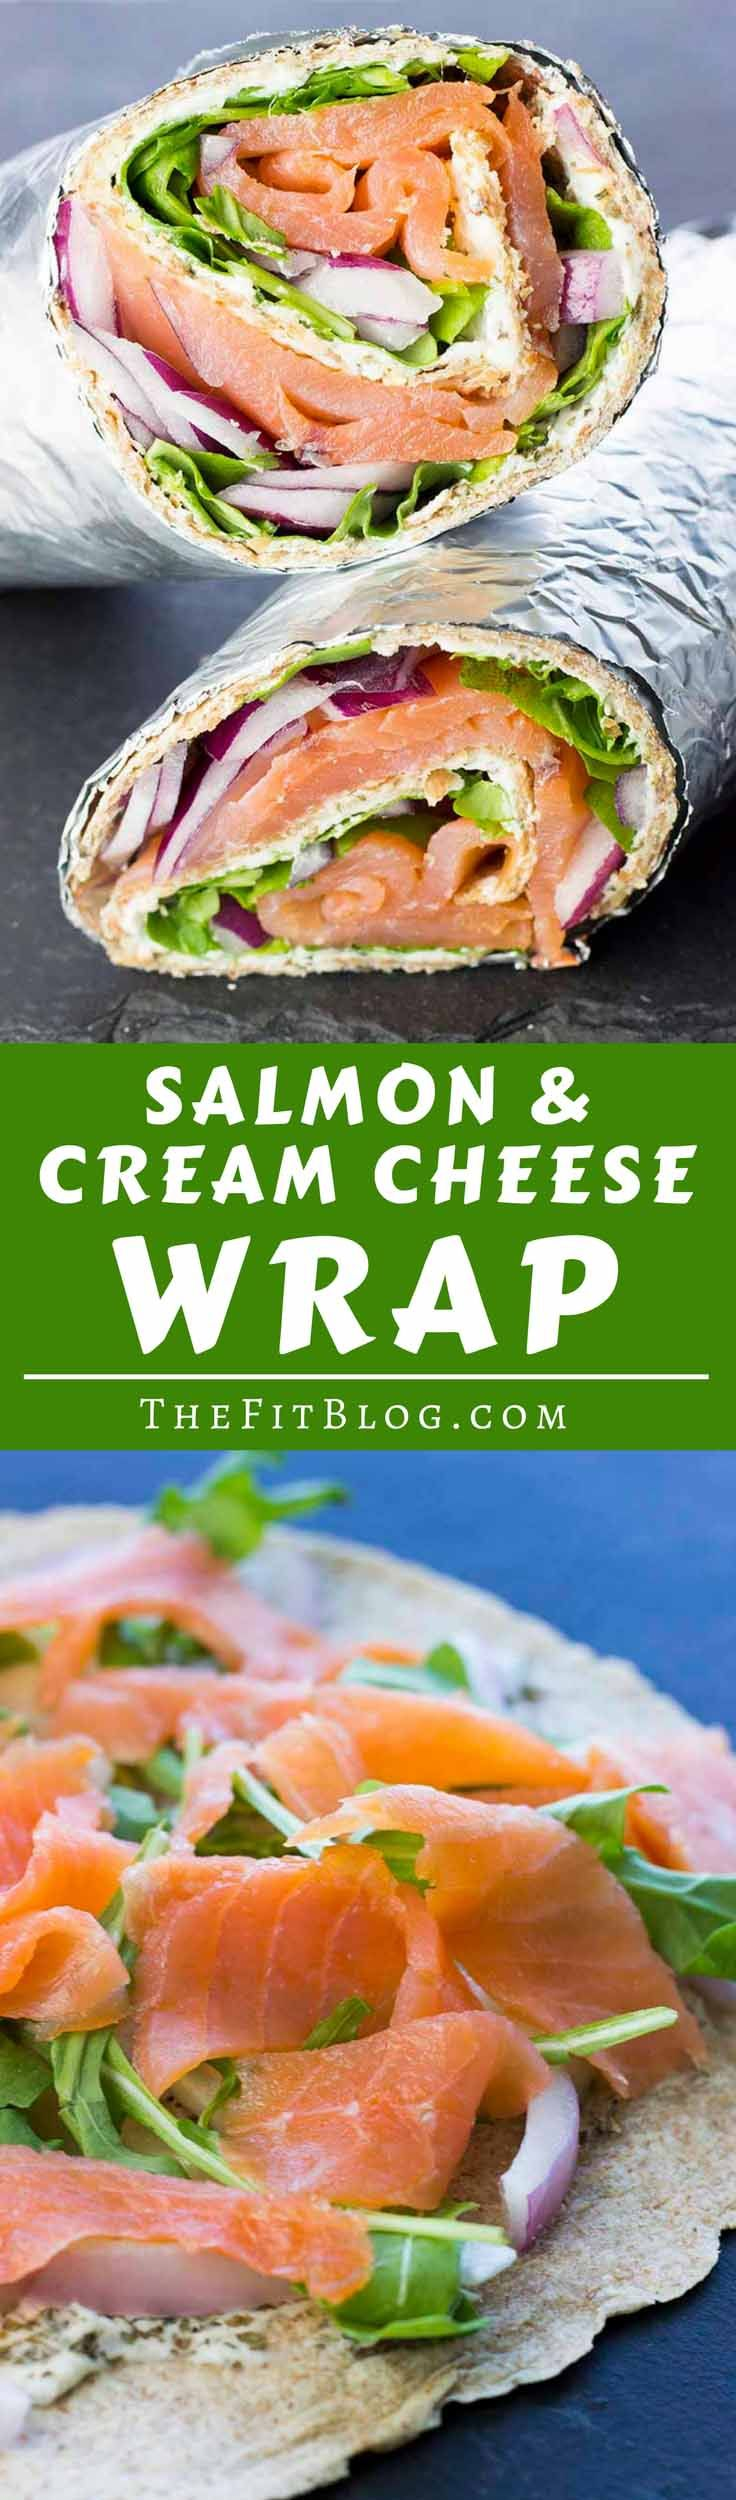 This Smoked Salmon and Cream Cheese Wrap is a delicious and healthy take on an iconic breakfast/brunch recipe. The perfect way to start the day | high protein | low carb | sugar free | gluten free | d